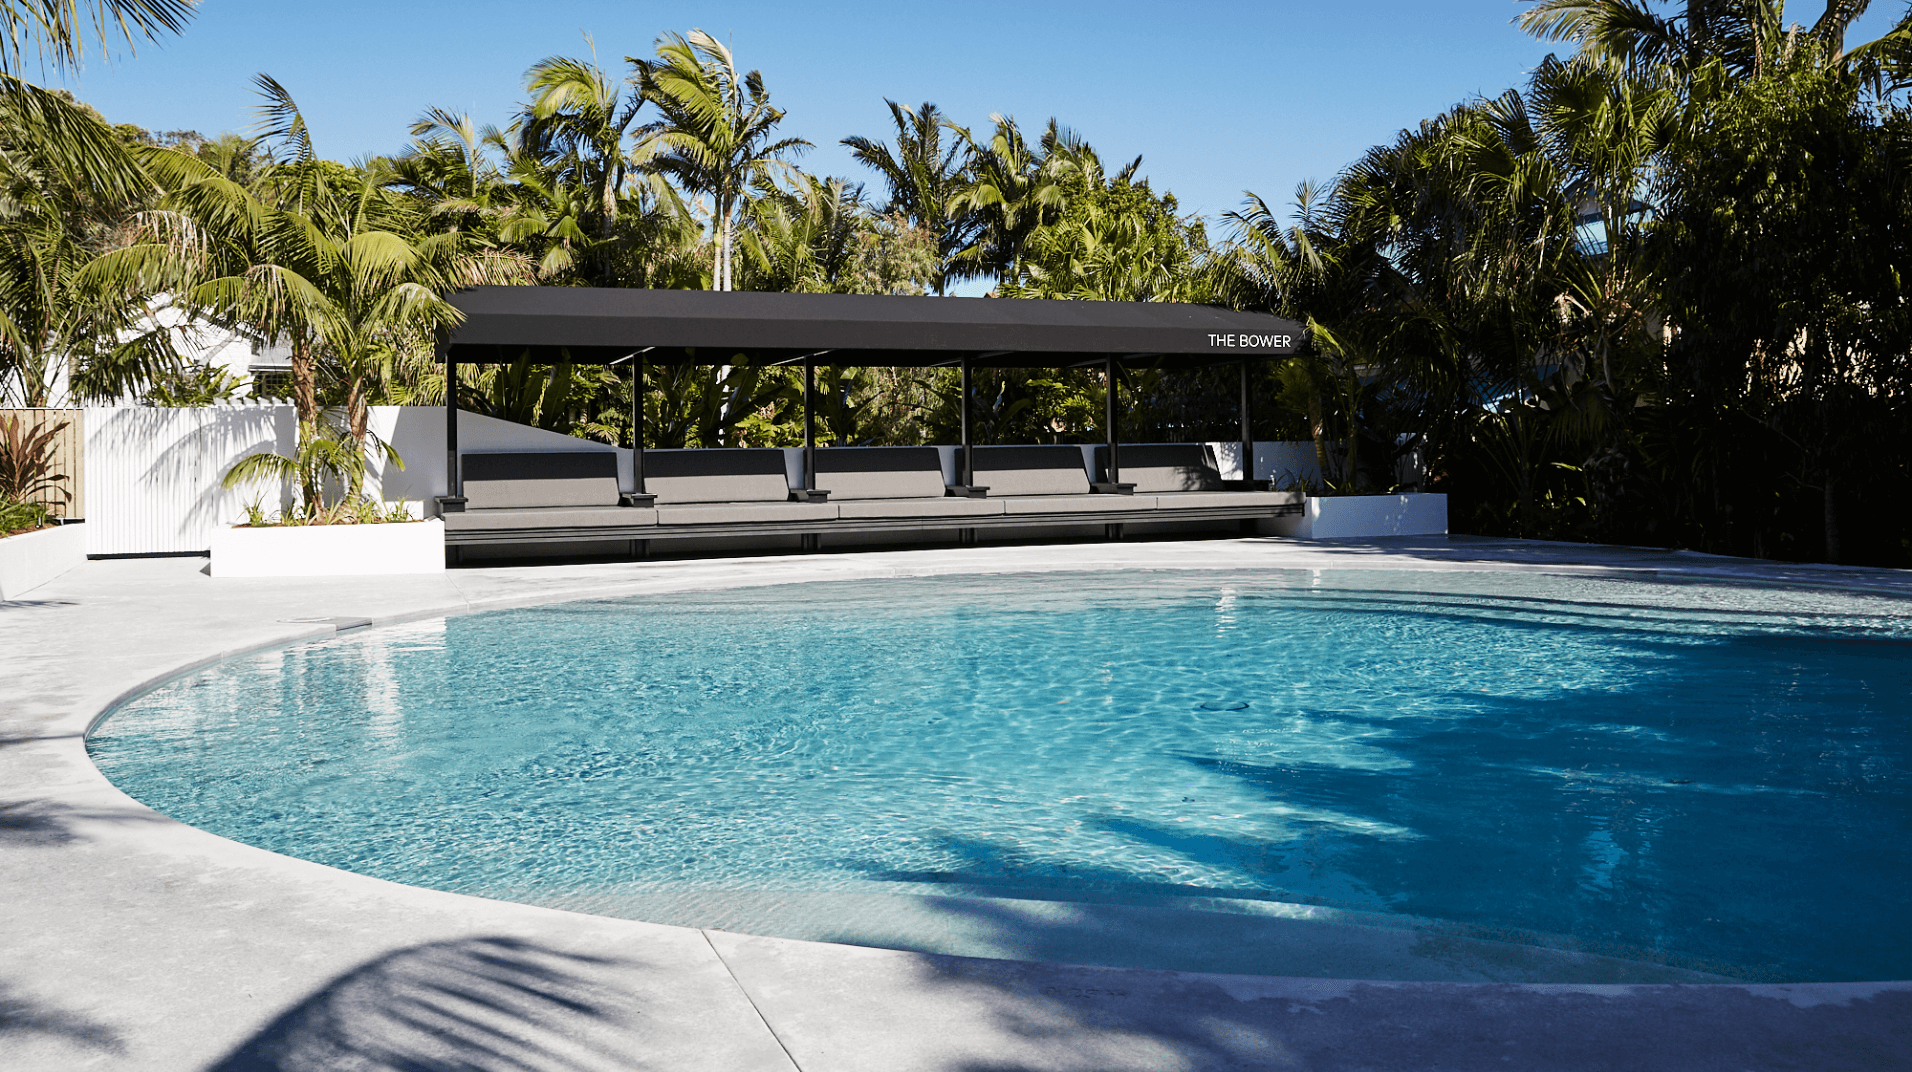 Bower-pool-The-Bower-Byron-Bay